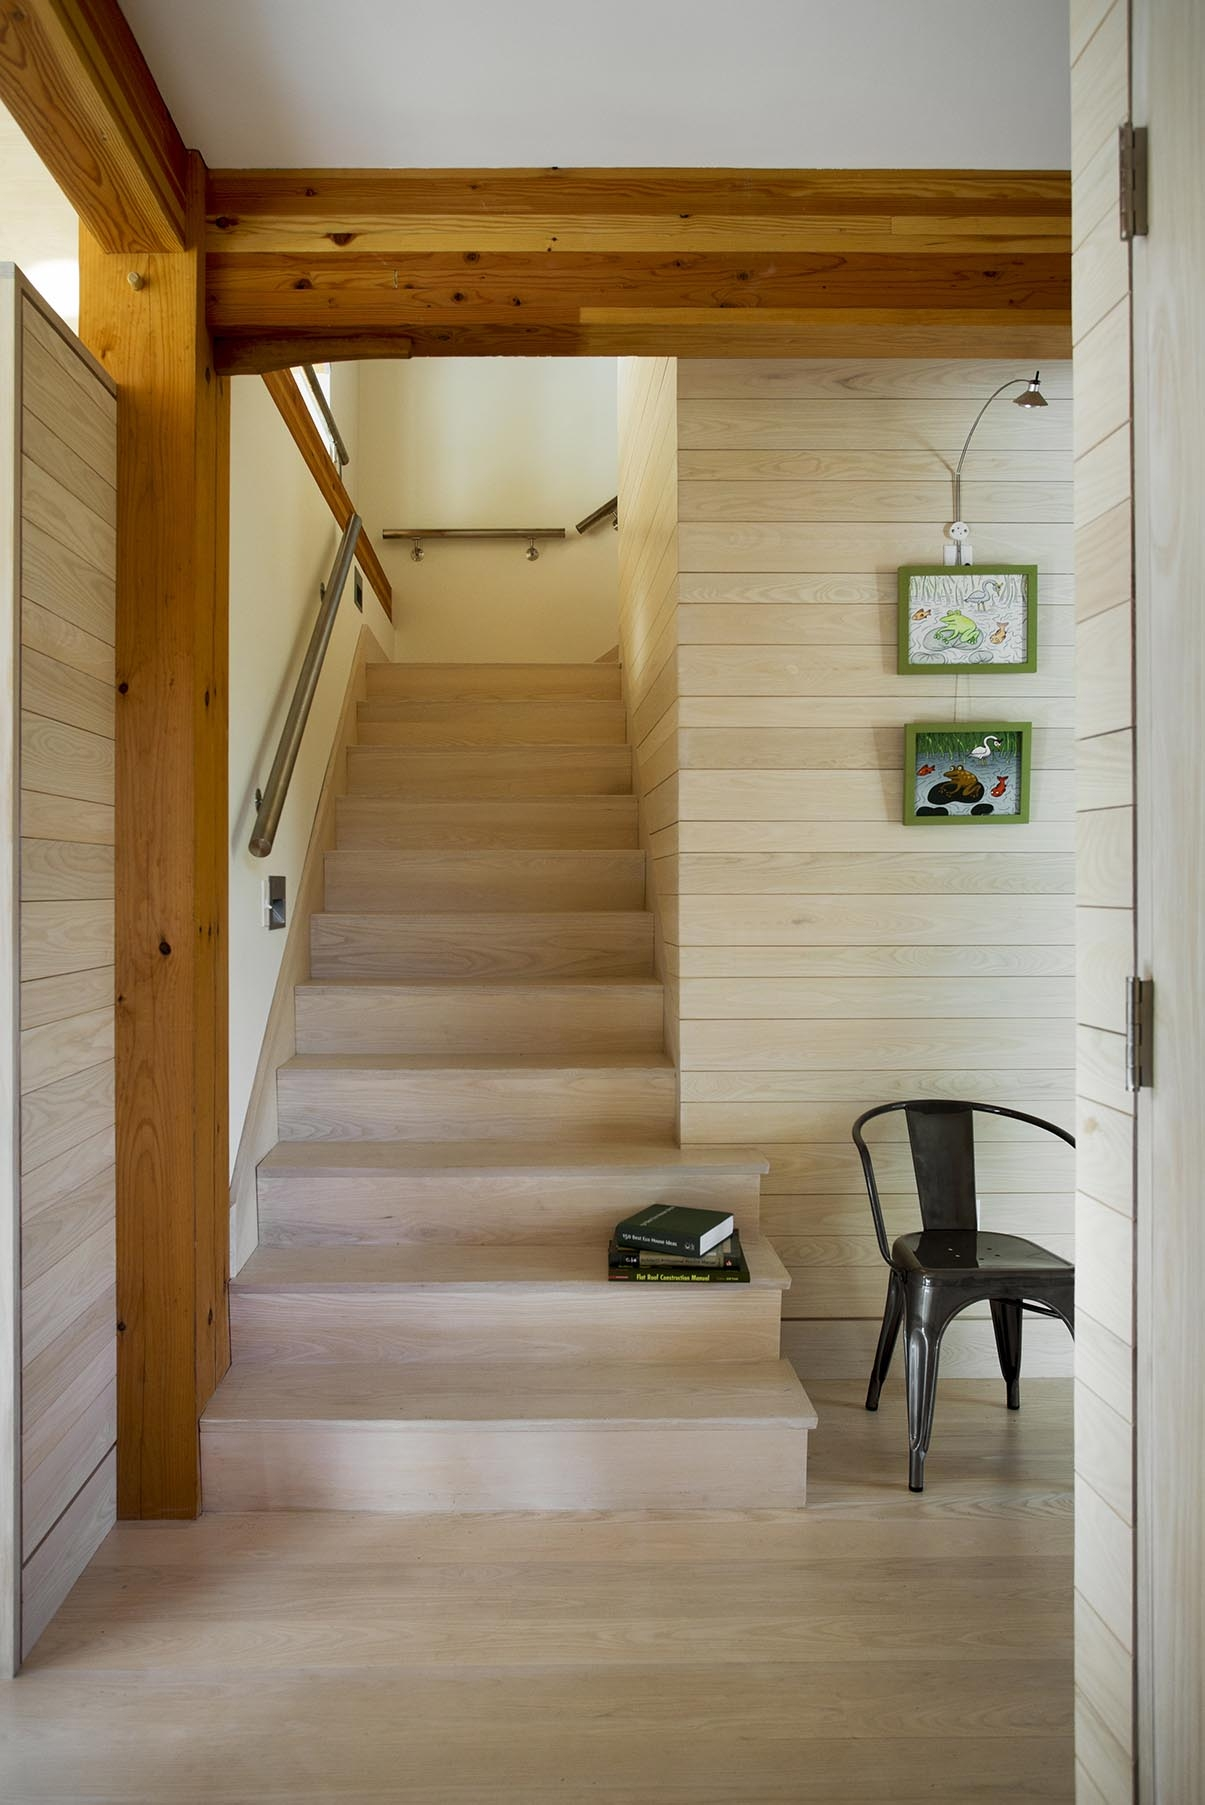 Style Guide For Stairs Bensonwood | Converting Spiral Staircase To Straight | Stair Case | Building Regulations | Handrail | House | Attic Stairs